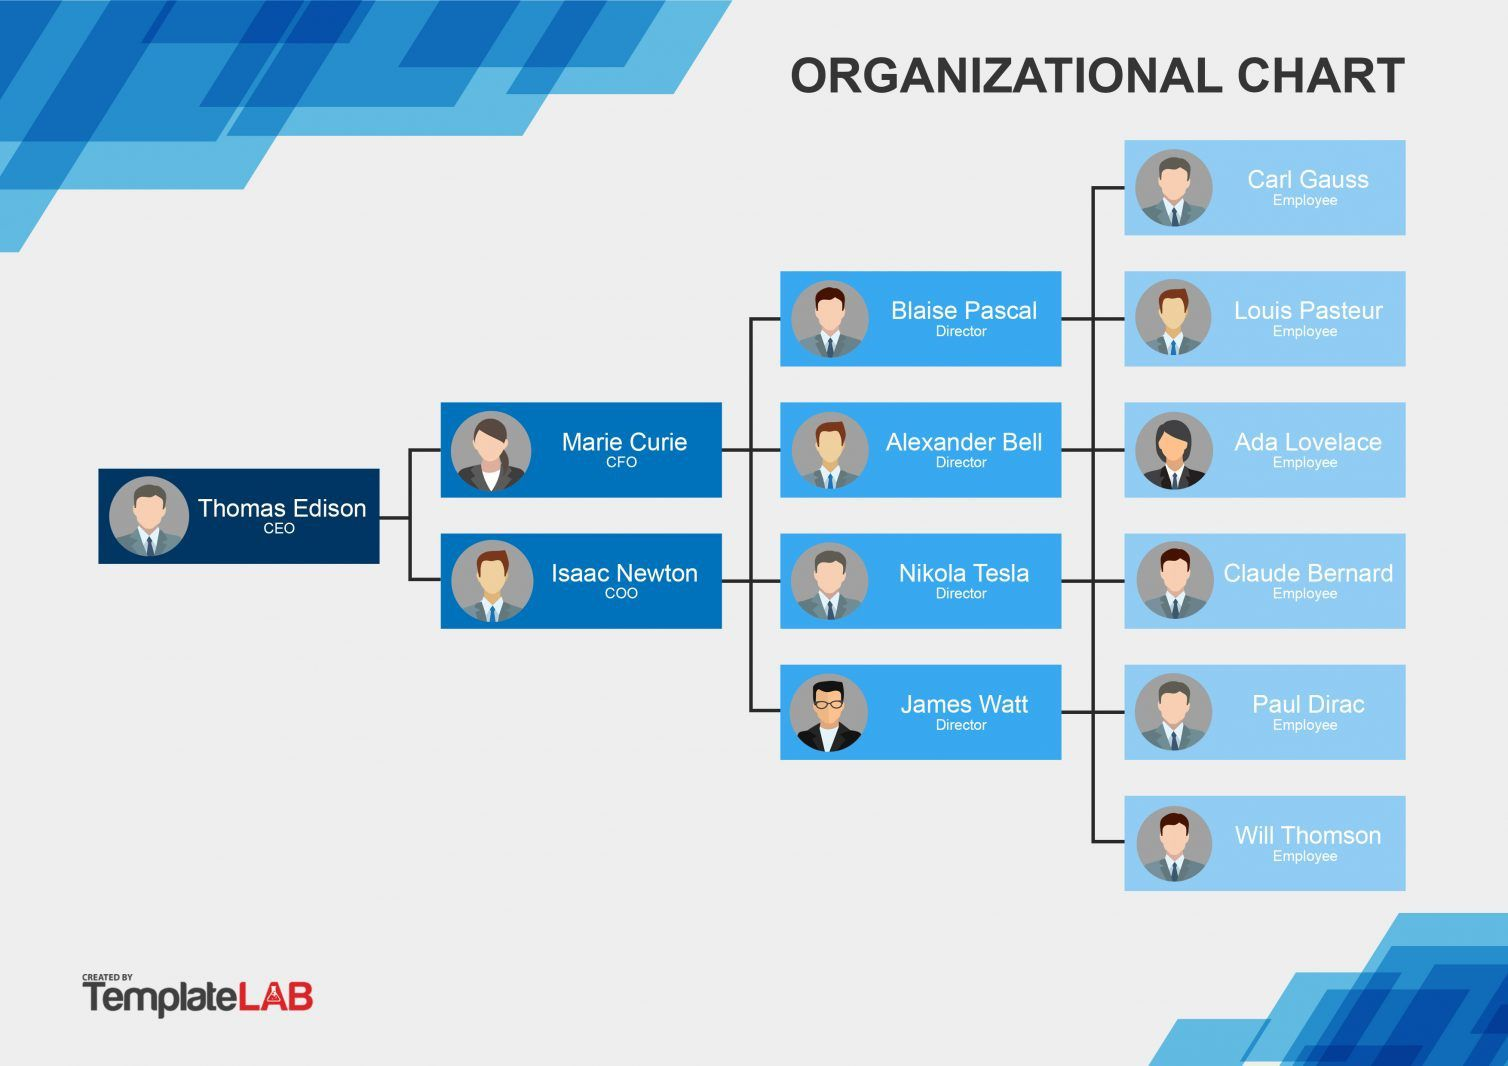 009 Simple Organization Chart Template Excel 2010 Picture  Org OrganizationalFull